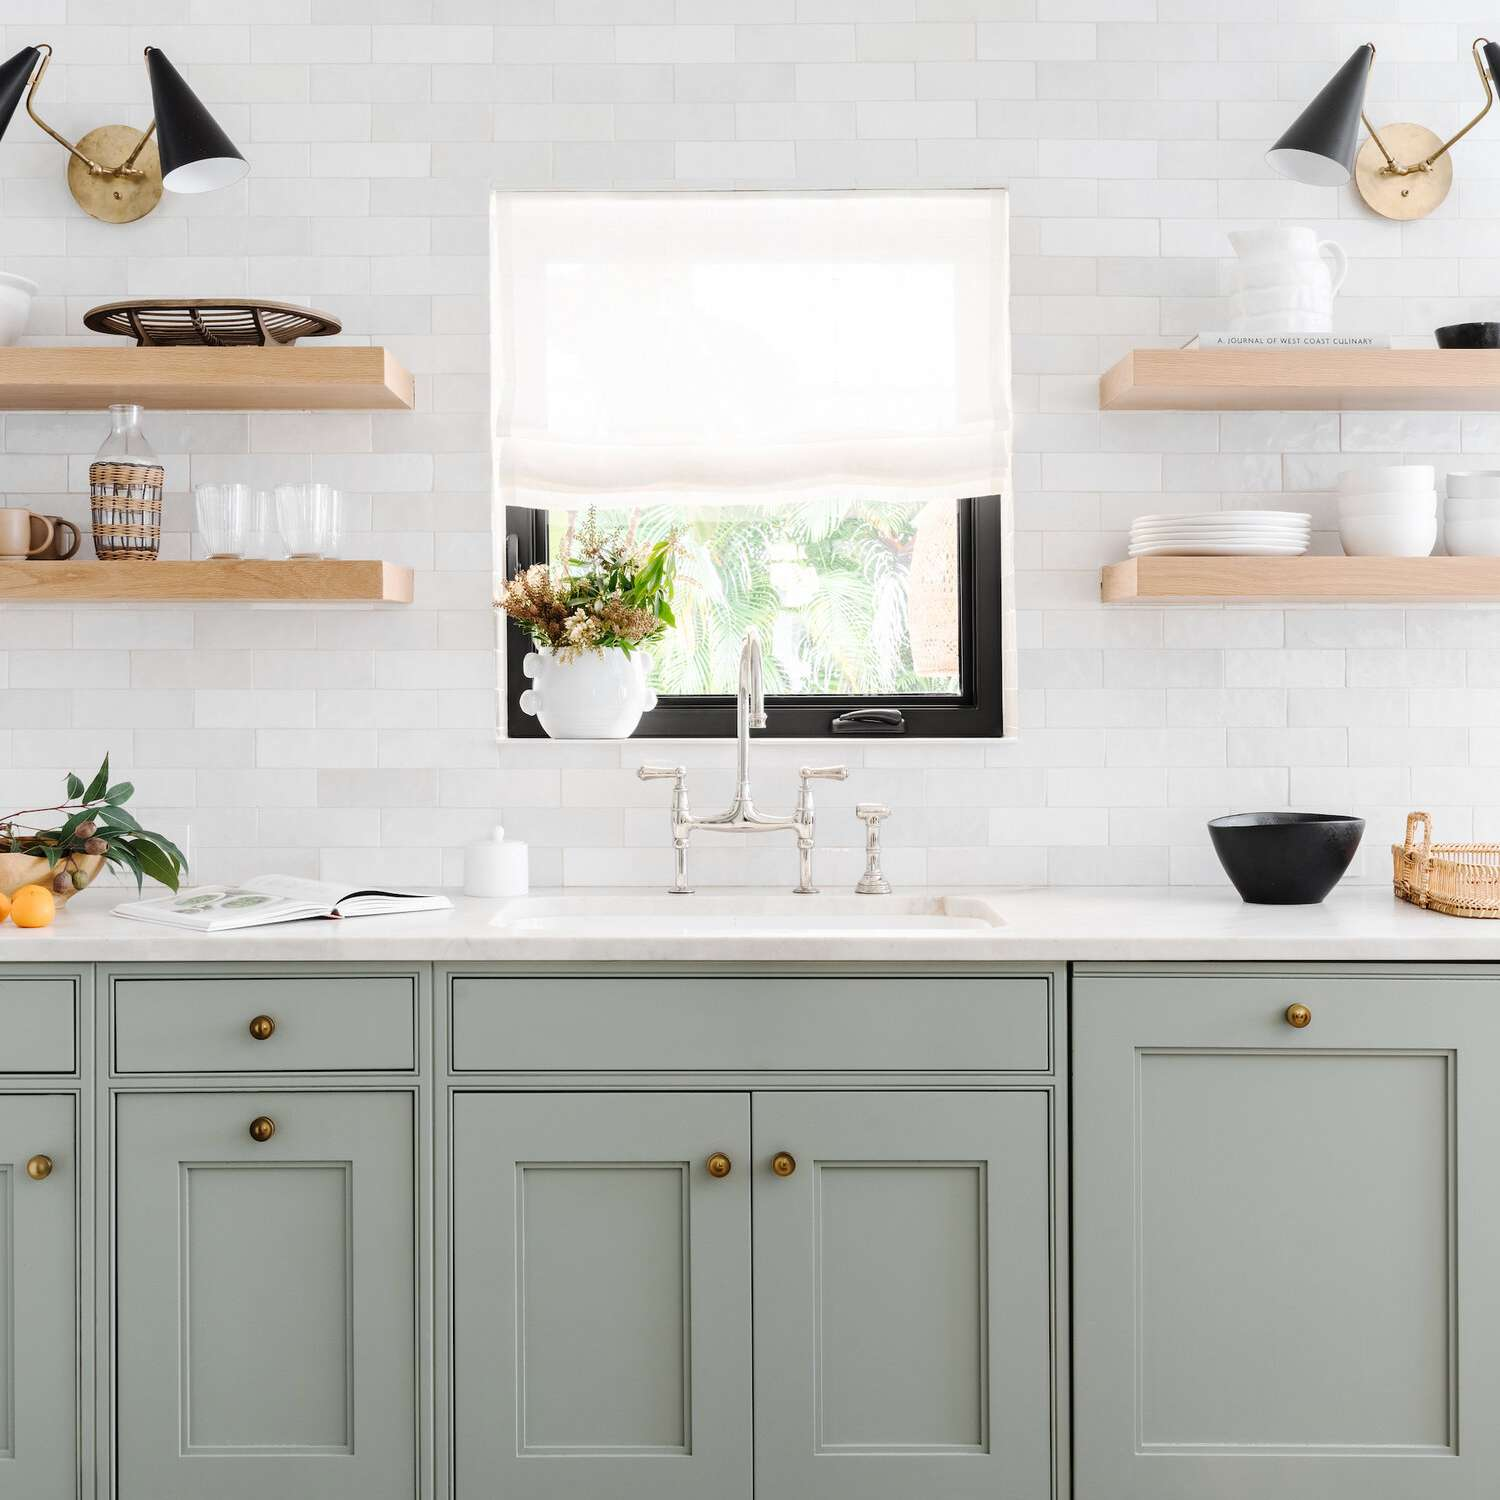 Kitchen with light green cabinets